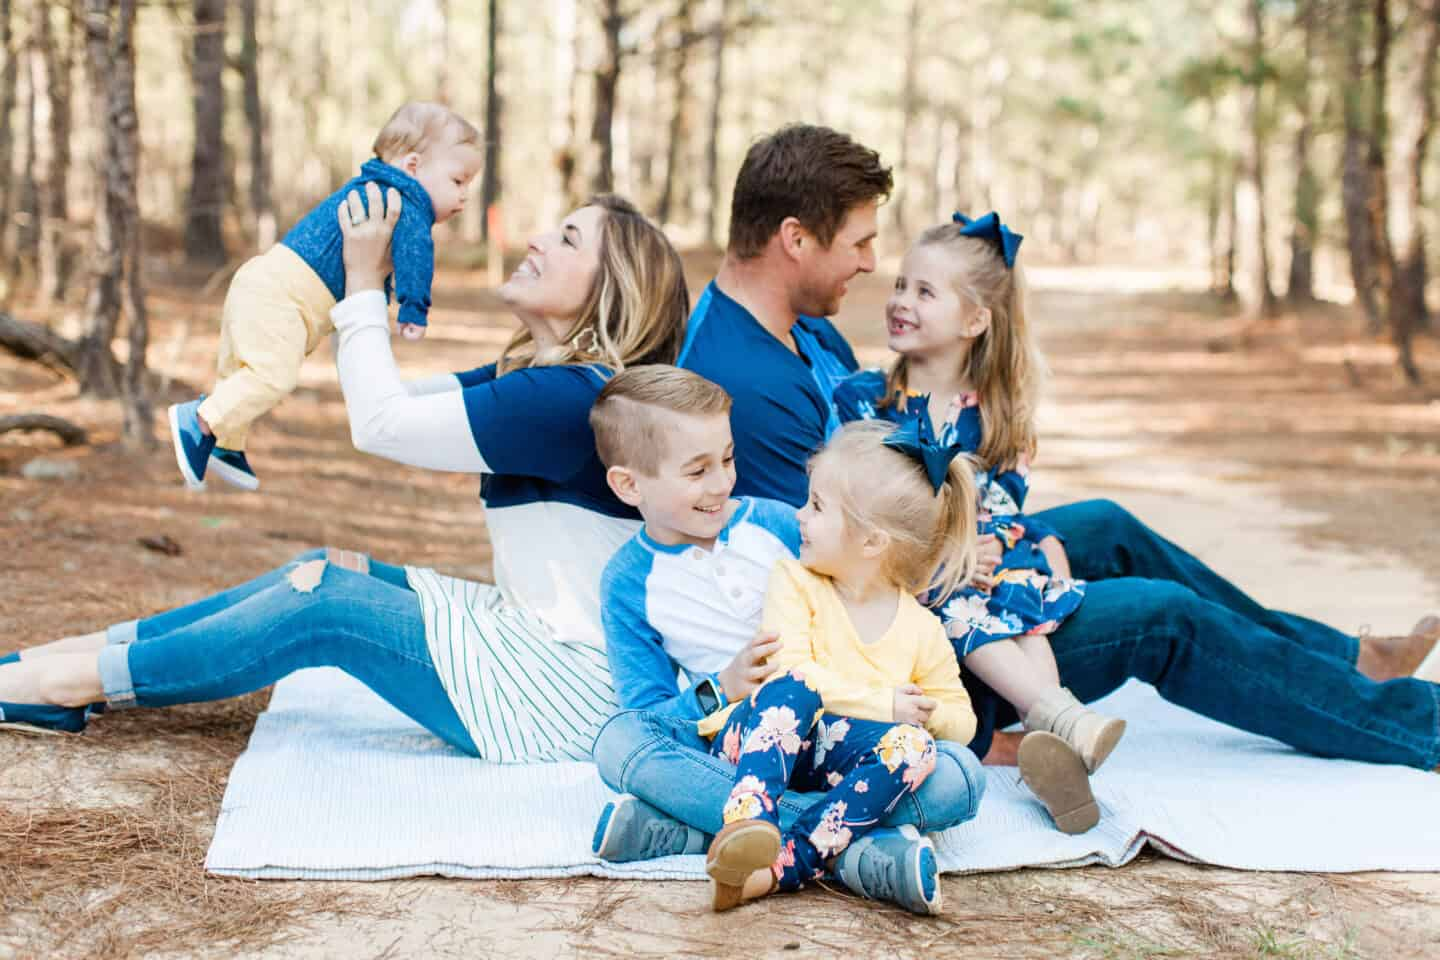 Best Summer Family Photo Ideas - What to Wear and More!